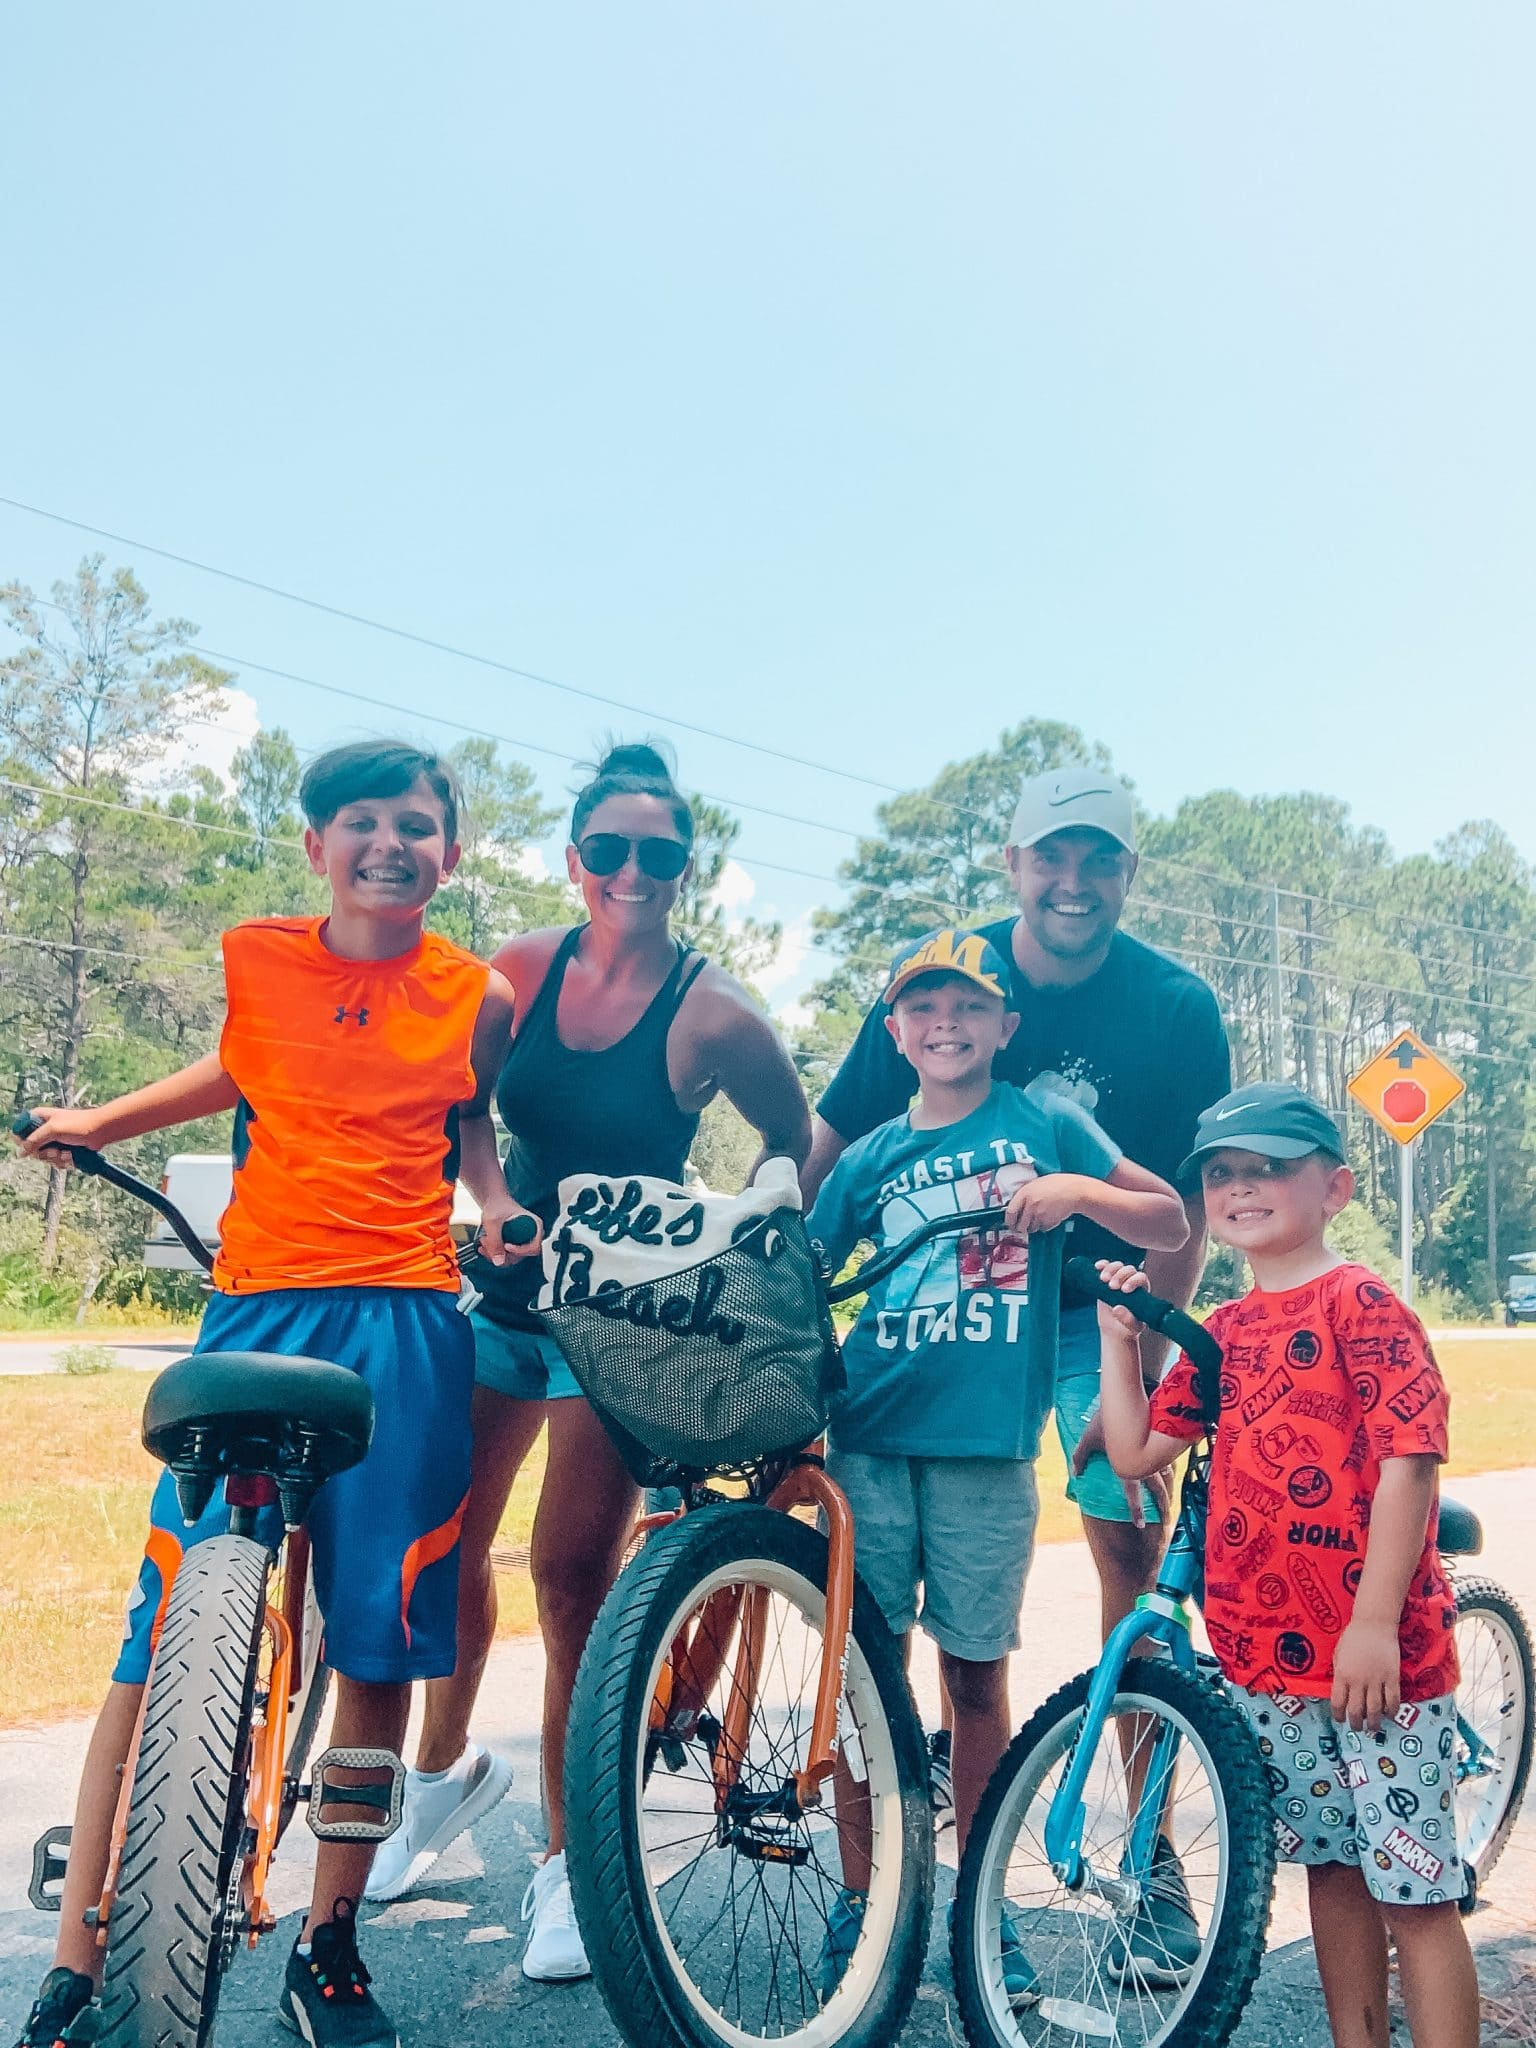 30A Vacation, Bike Rental Rent Gear Here, Blue Mountain Beach, Florida, Stilettos and Diapers